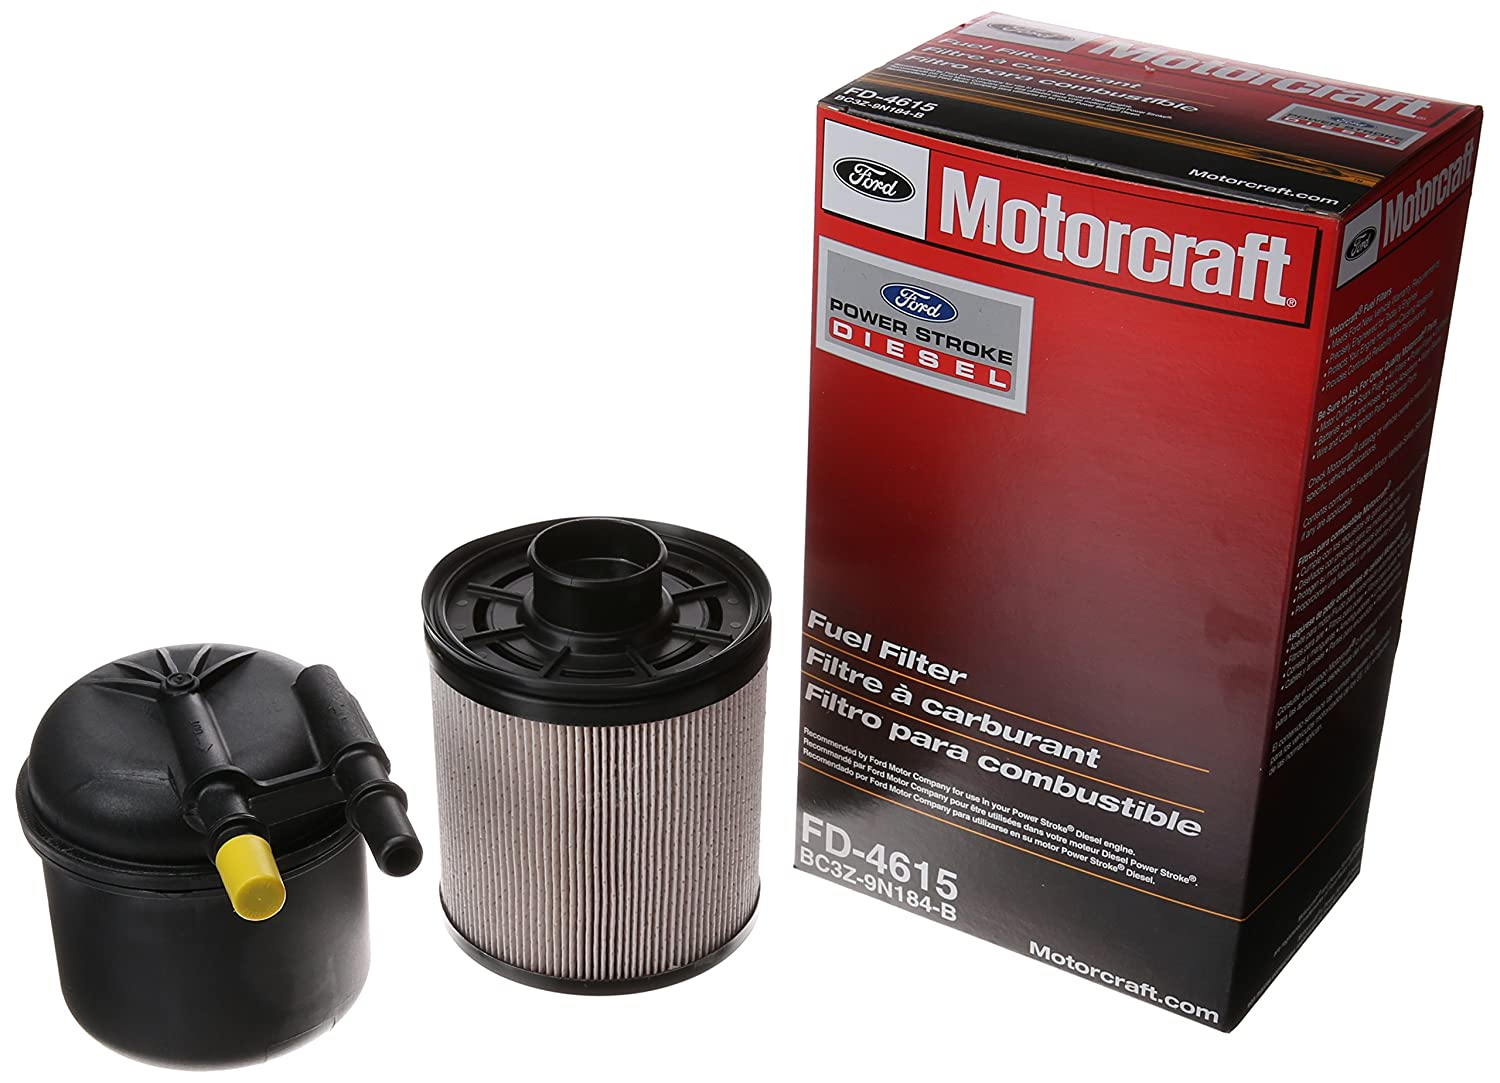 2001 Jeep Wrangler Fuel Filter Location Filters Replacement Parts Automotive 1500x1083